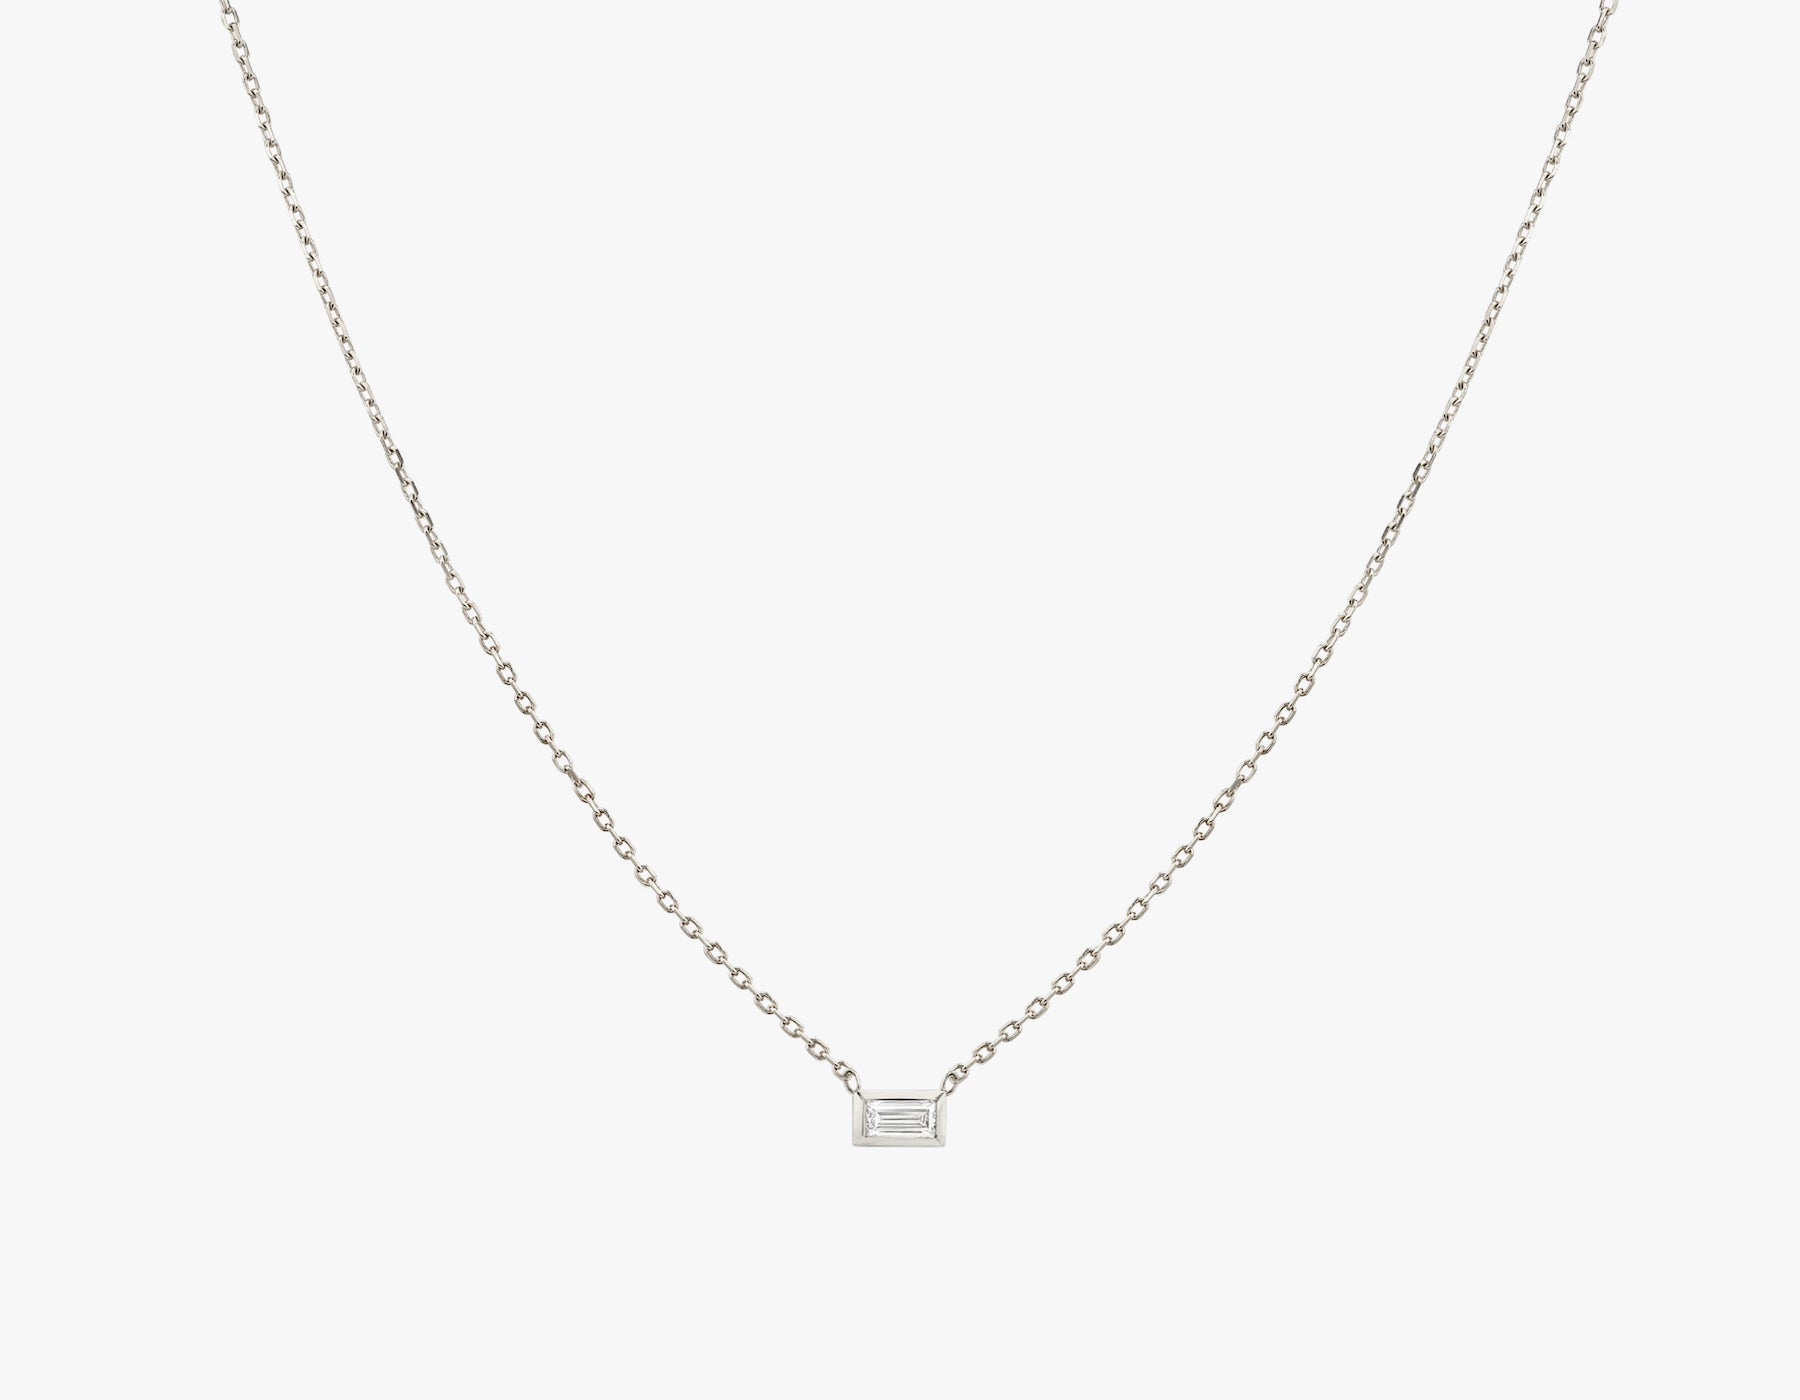 Vrai simple minimalist Baguette Diamond Bezel Necklace, 14K White Gold